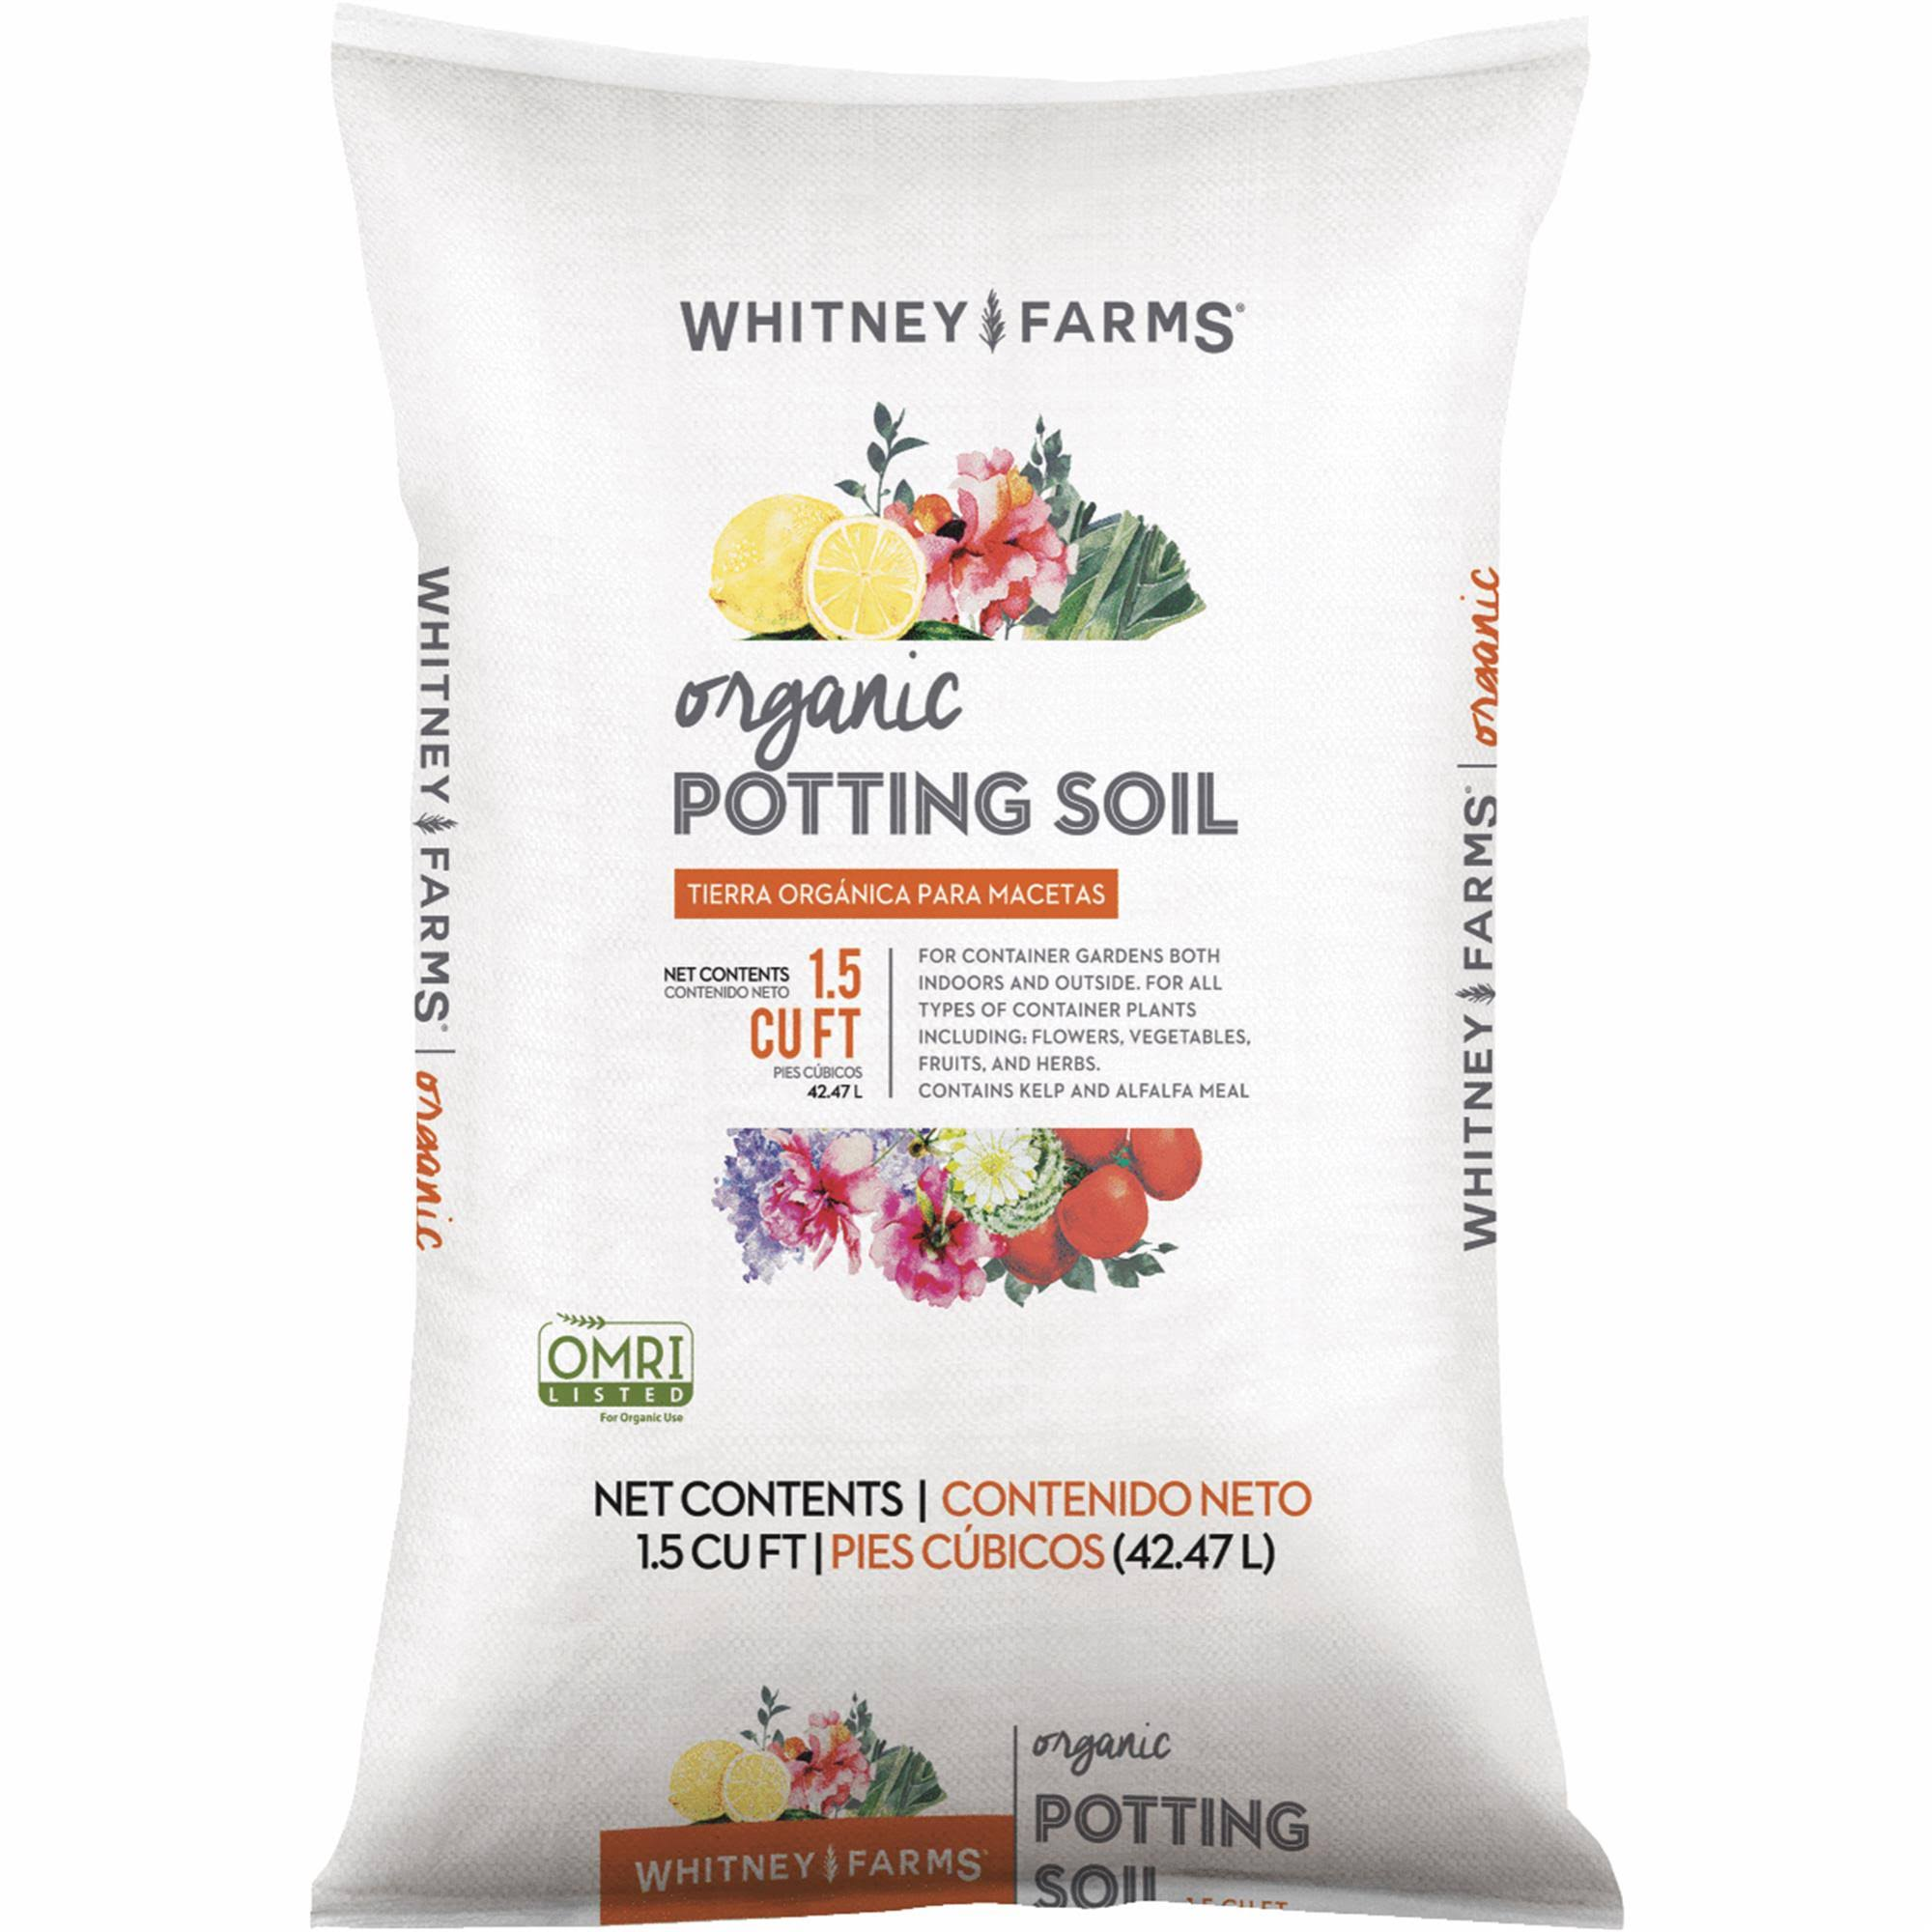 Whitney Farms Organic Potting Soil - 1.5 Cubic Feet